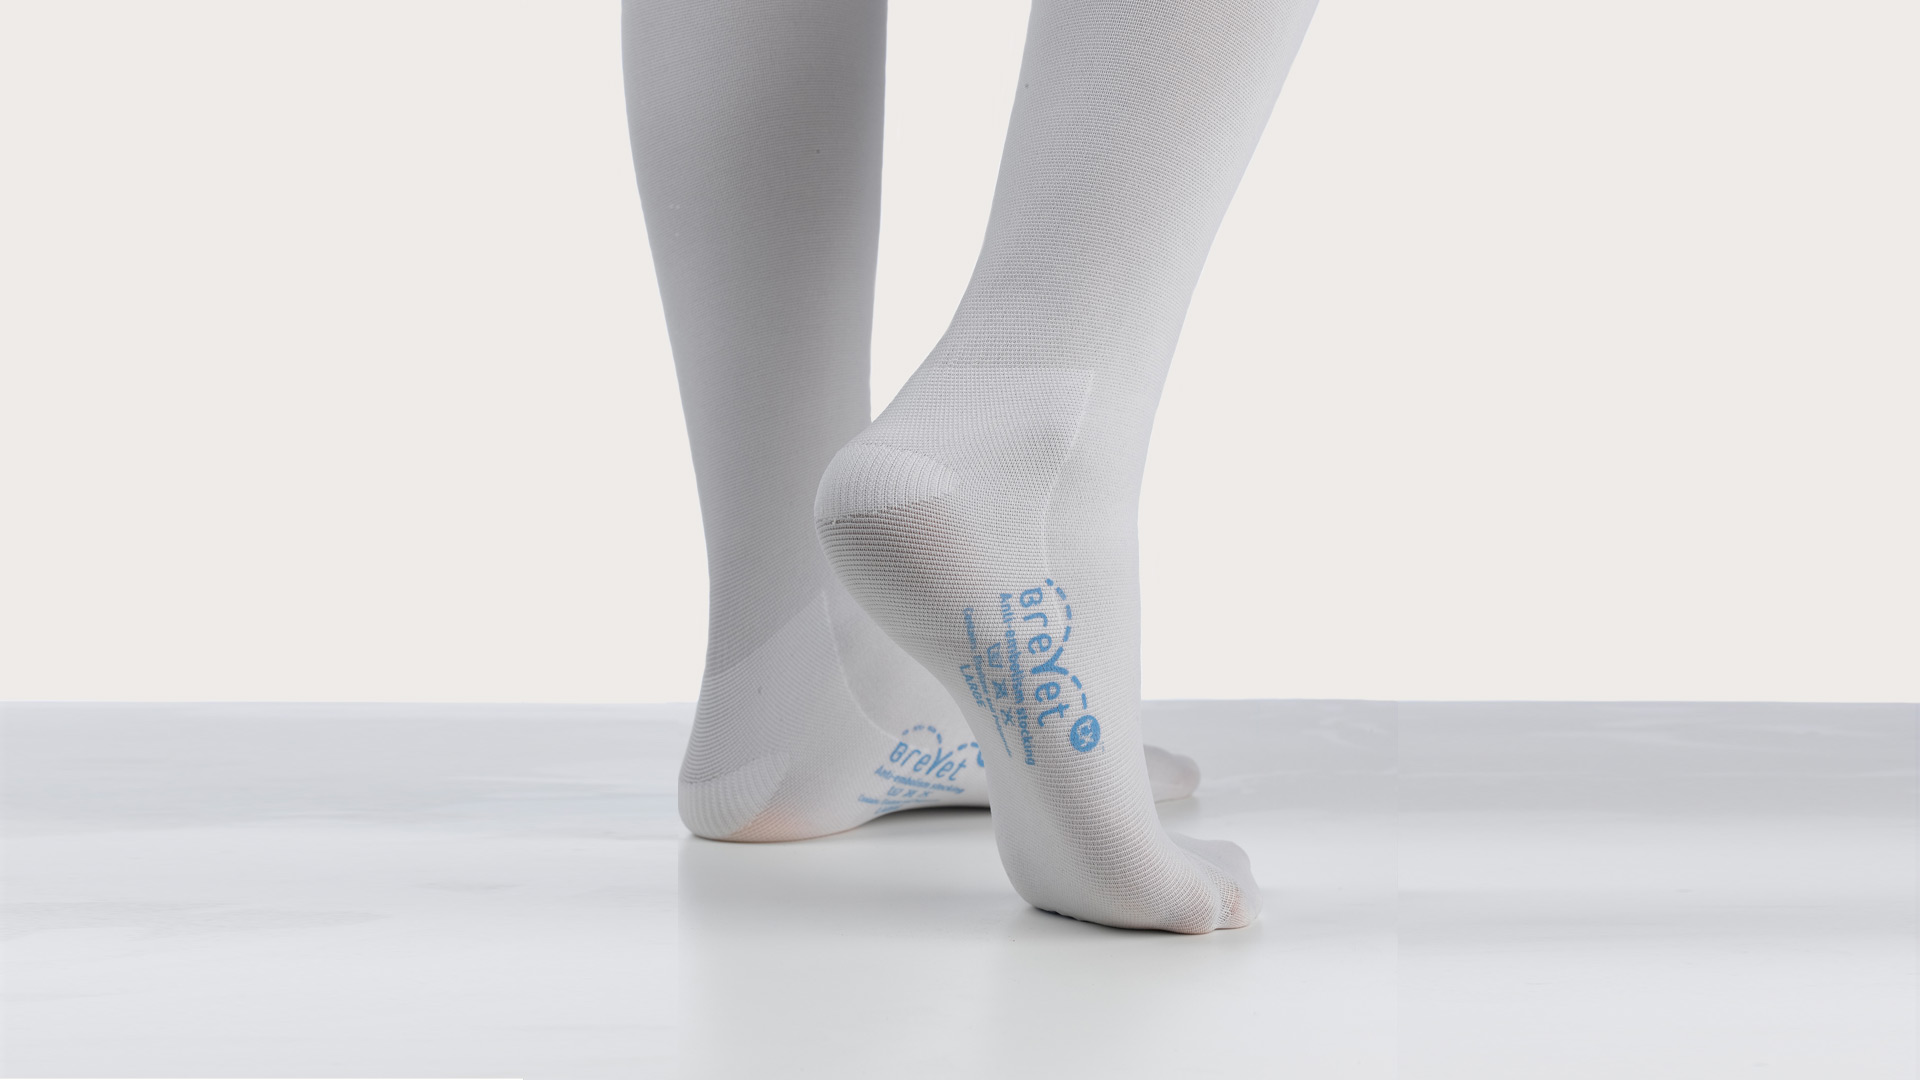 b18c98e0eb Brevet TX foot anti-embolism stockings Brevet TX